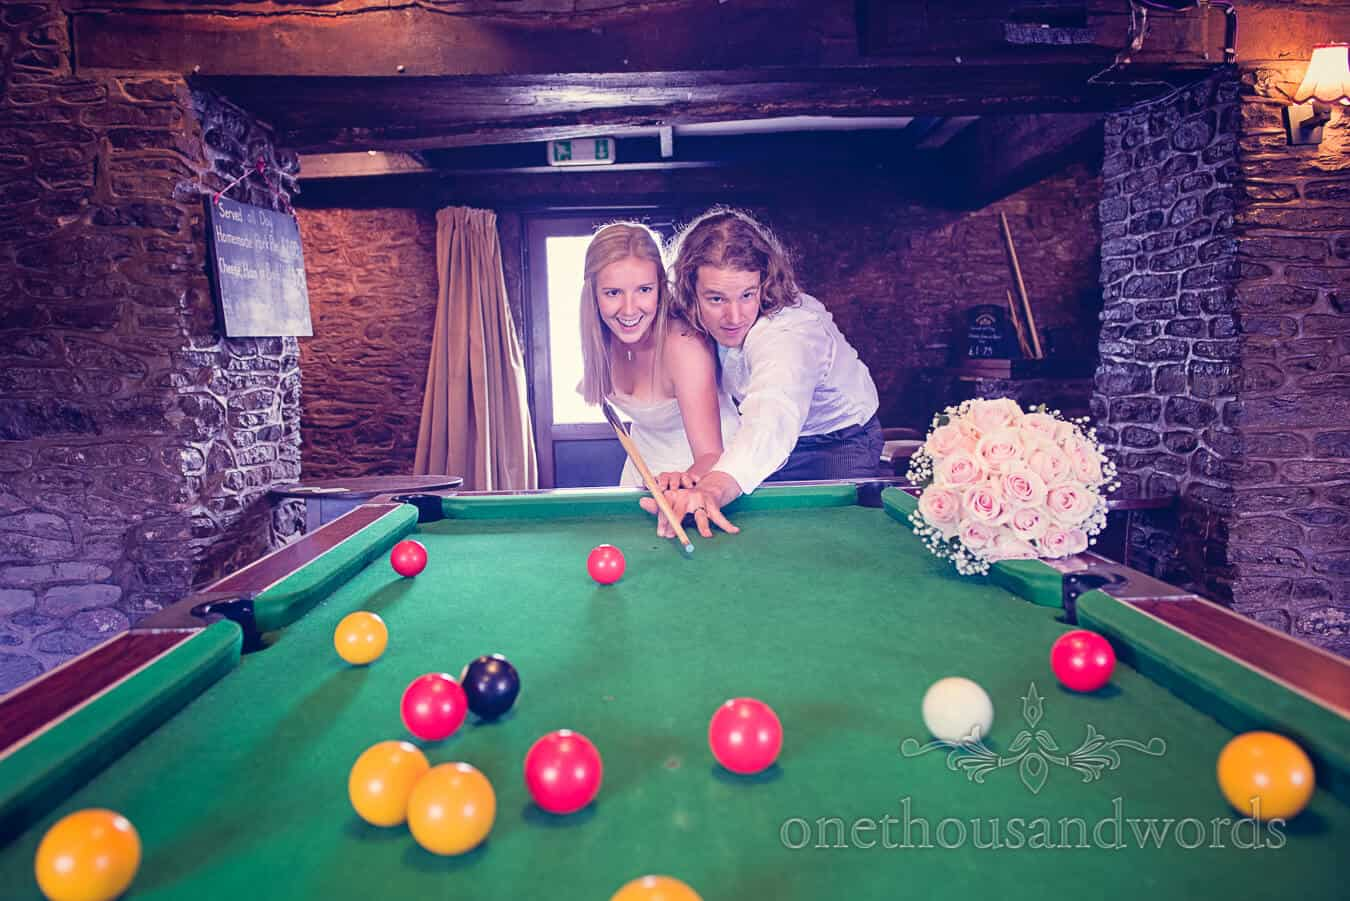 Bride and groom play pool at countryside pub on wedding day